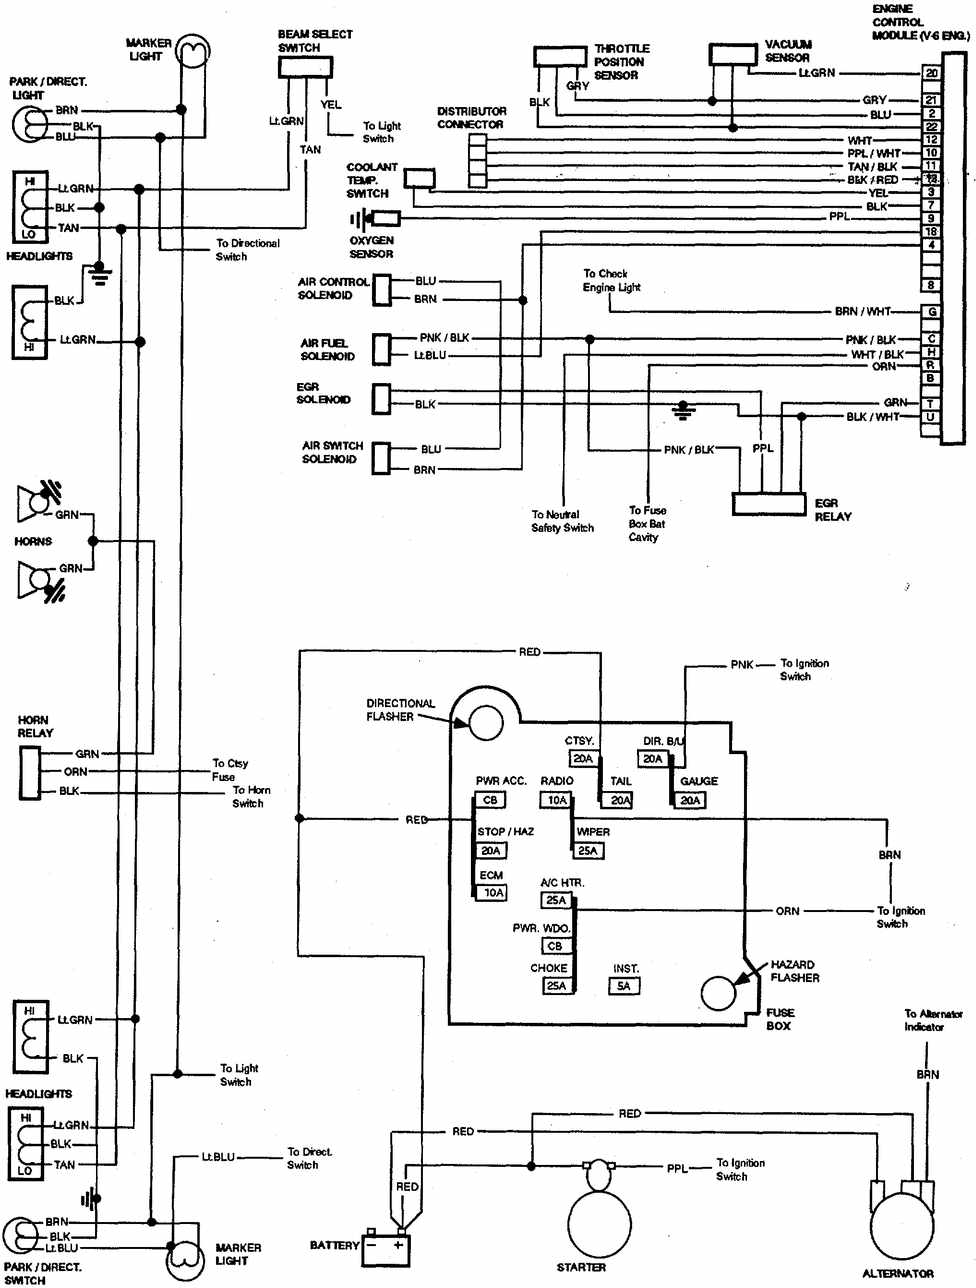 1991 chevy c3500 wiring diagram